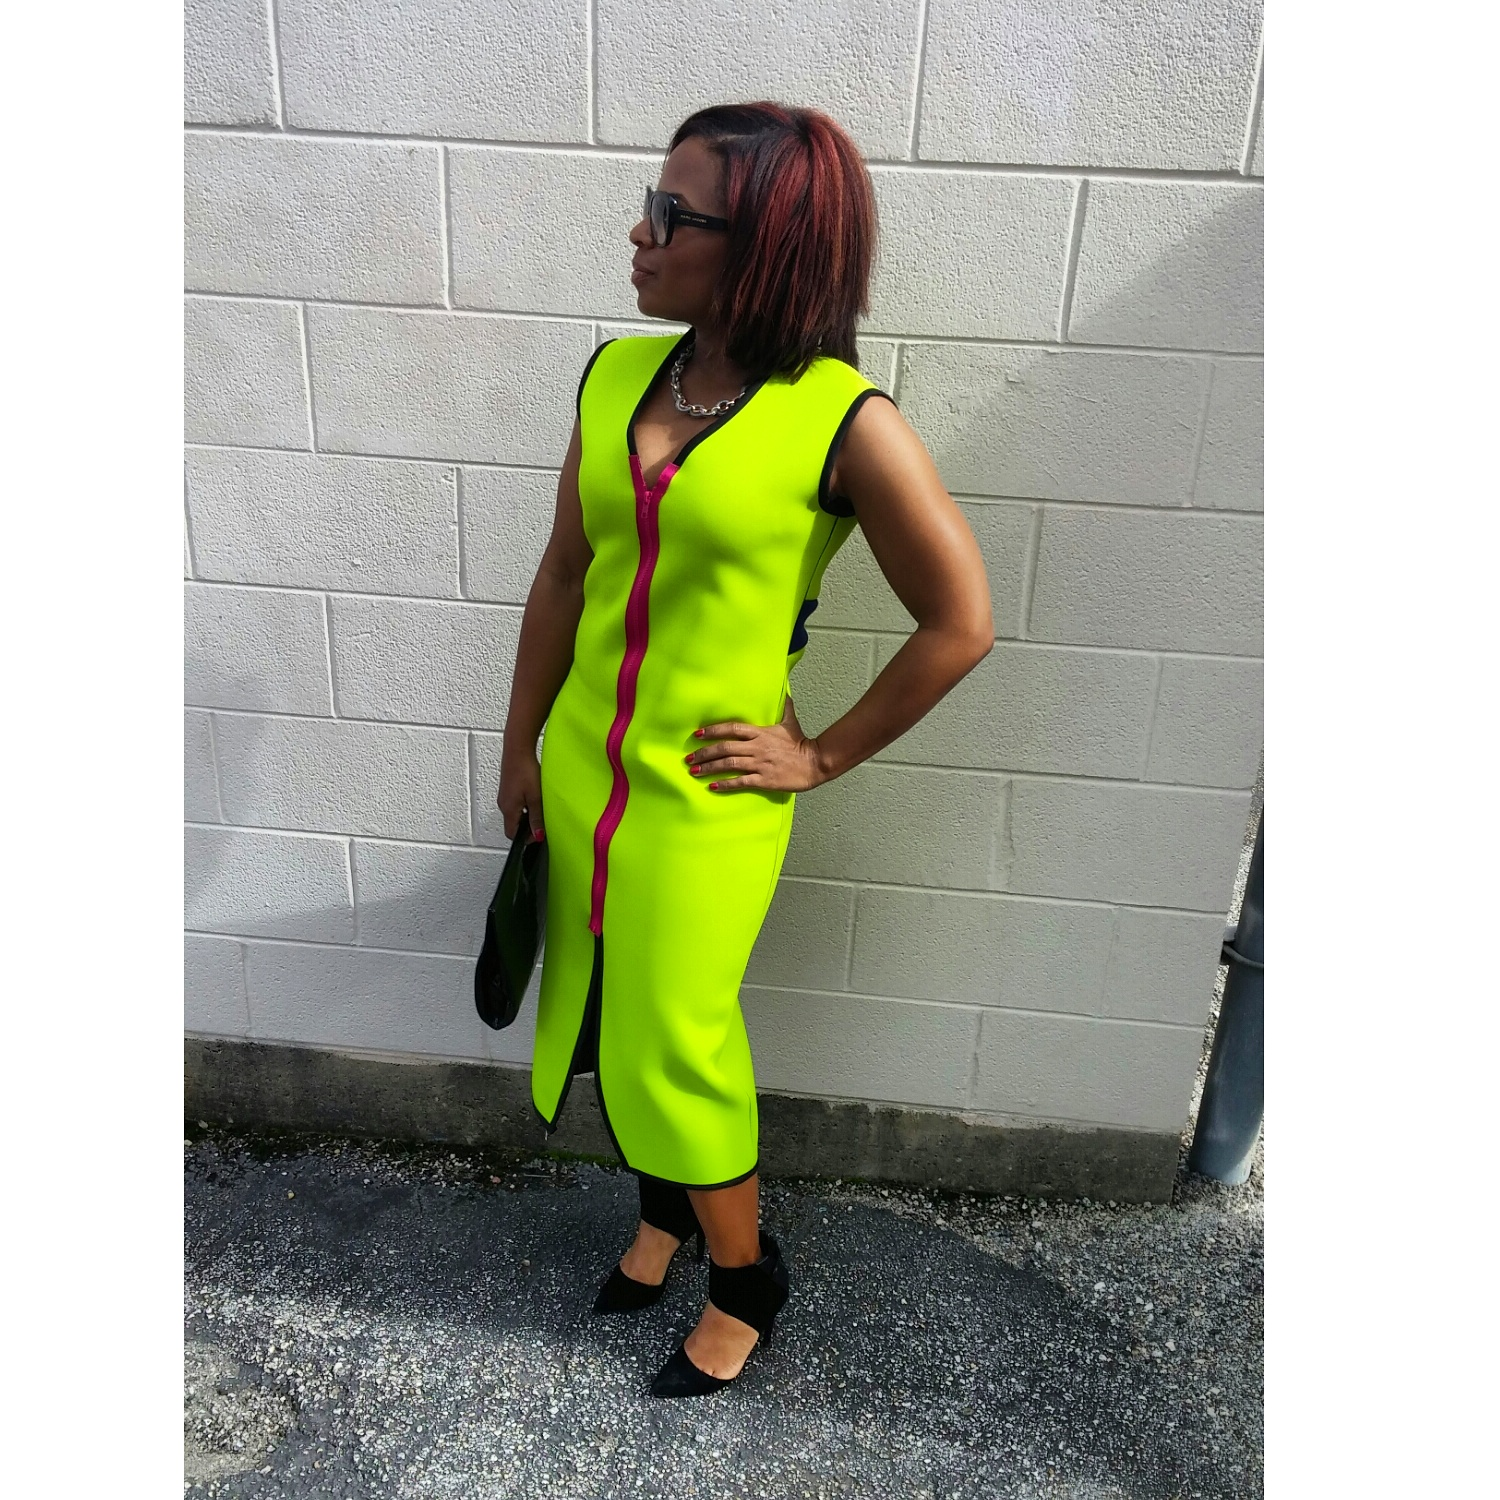 Neon Neoprene dress by 3degreesdb.com